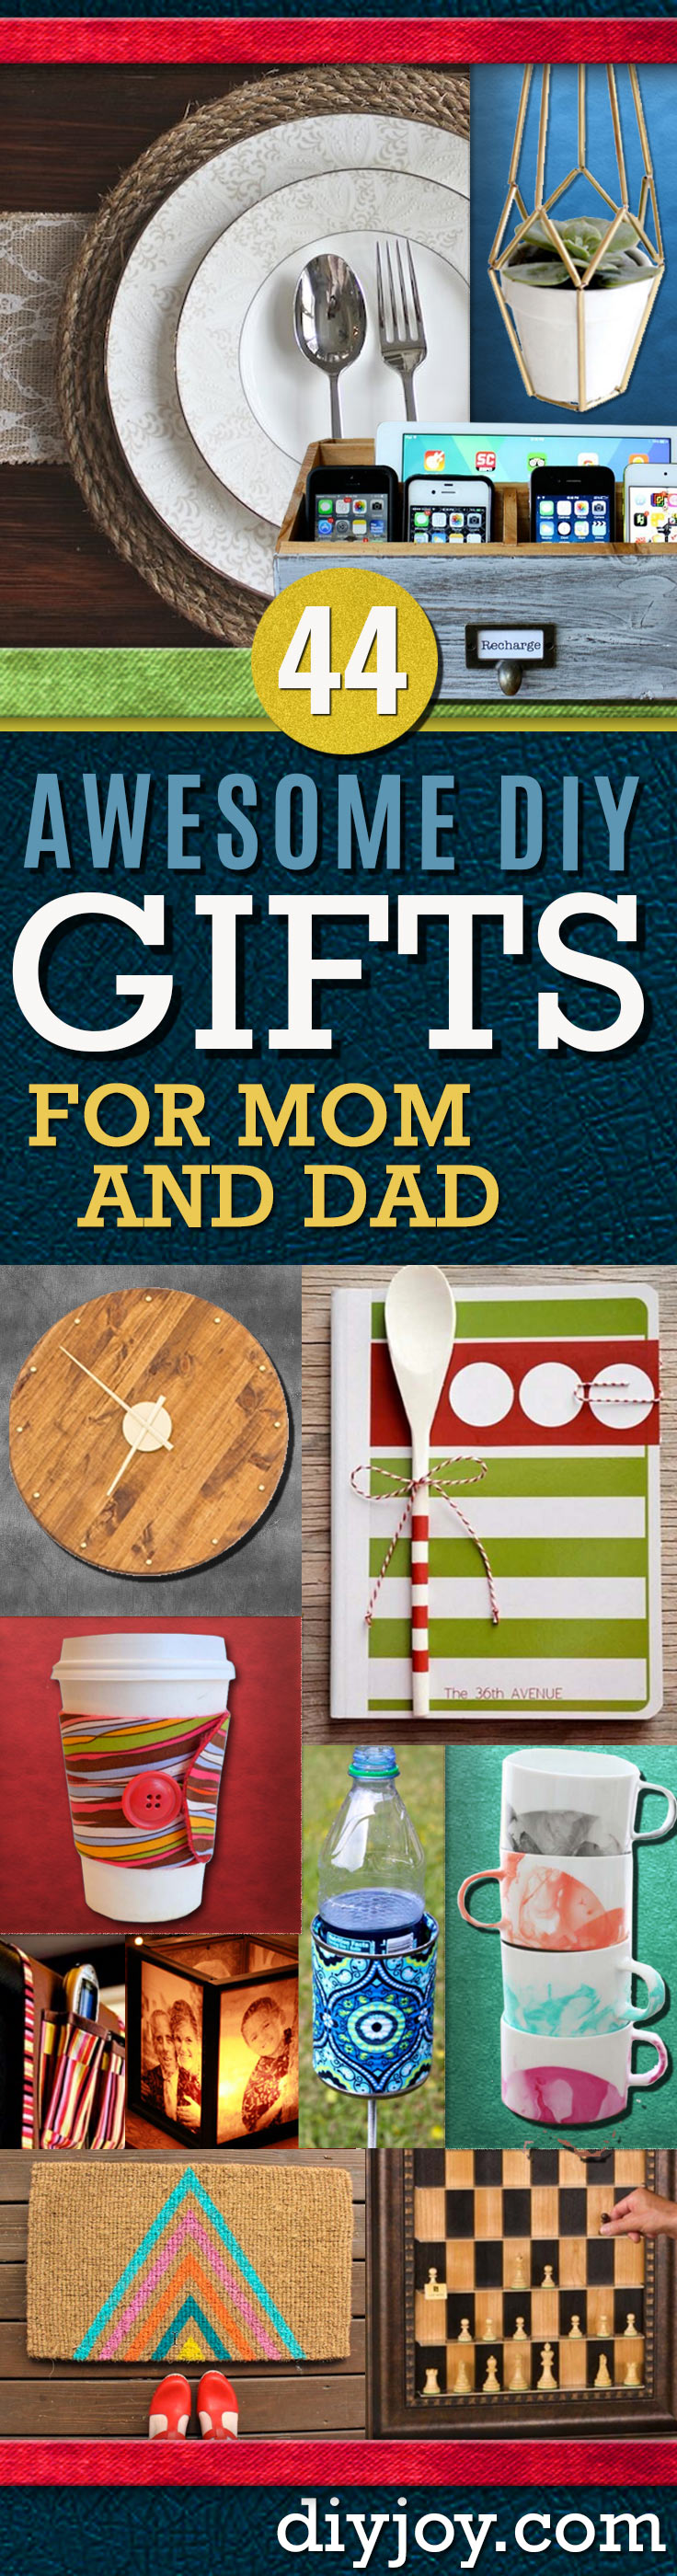 diy gifts for mom and dad homemade christmas gift ideas for your parents cool - Best Christmas Gifts For Parents